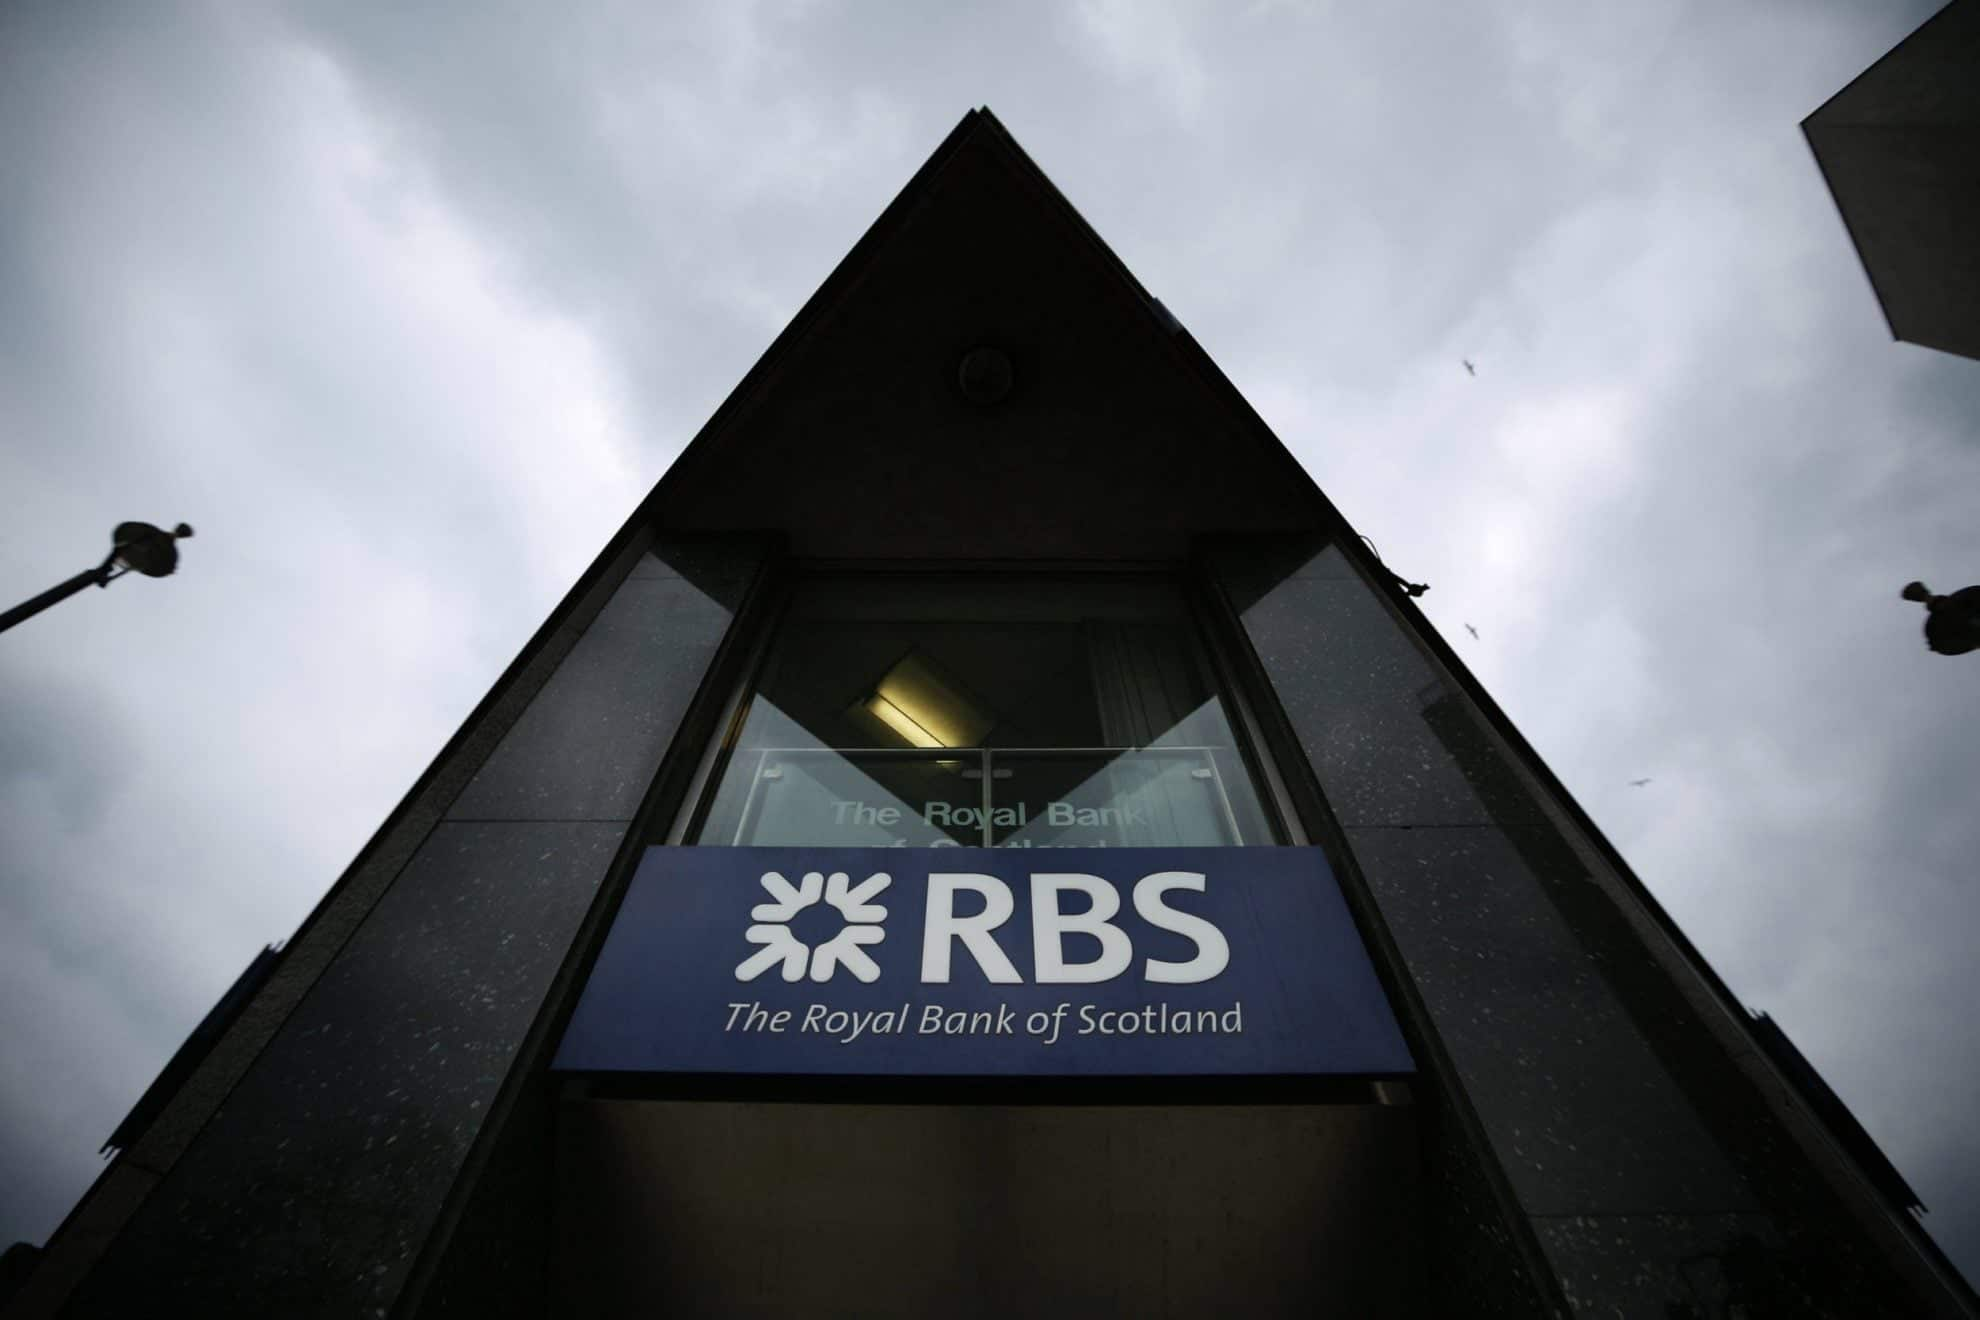 rbs grg claim solicitors financial mis selling irhps